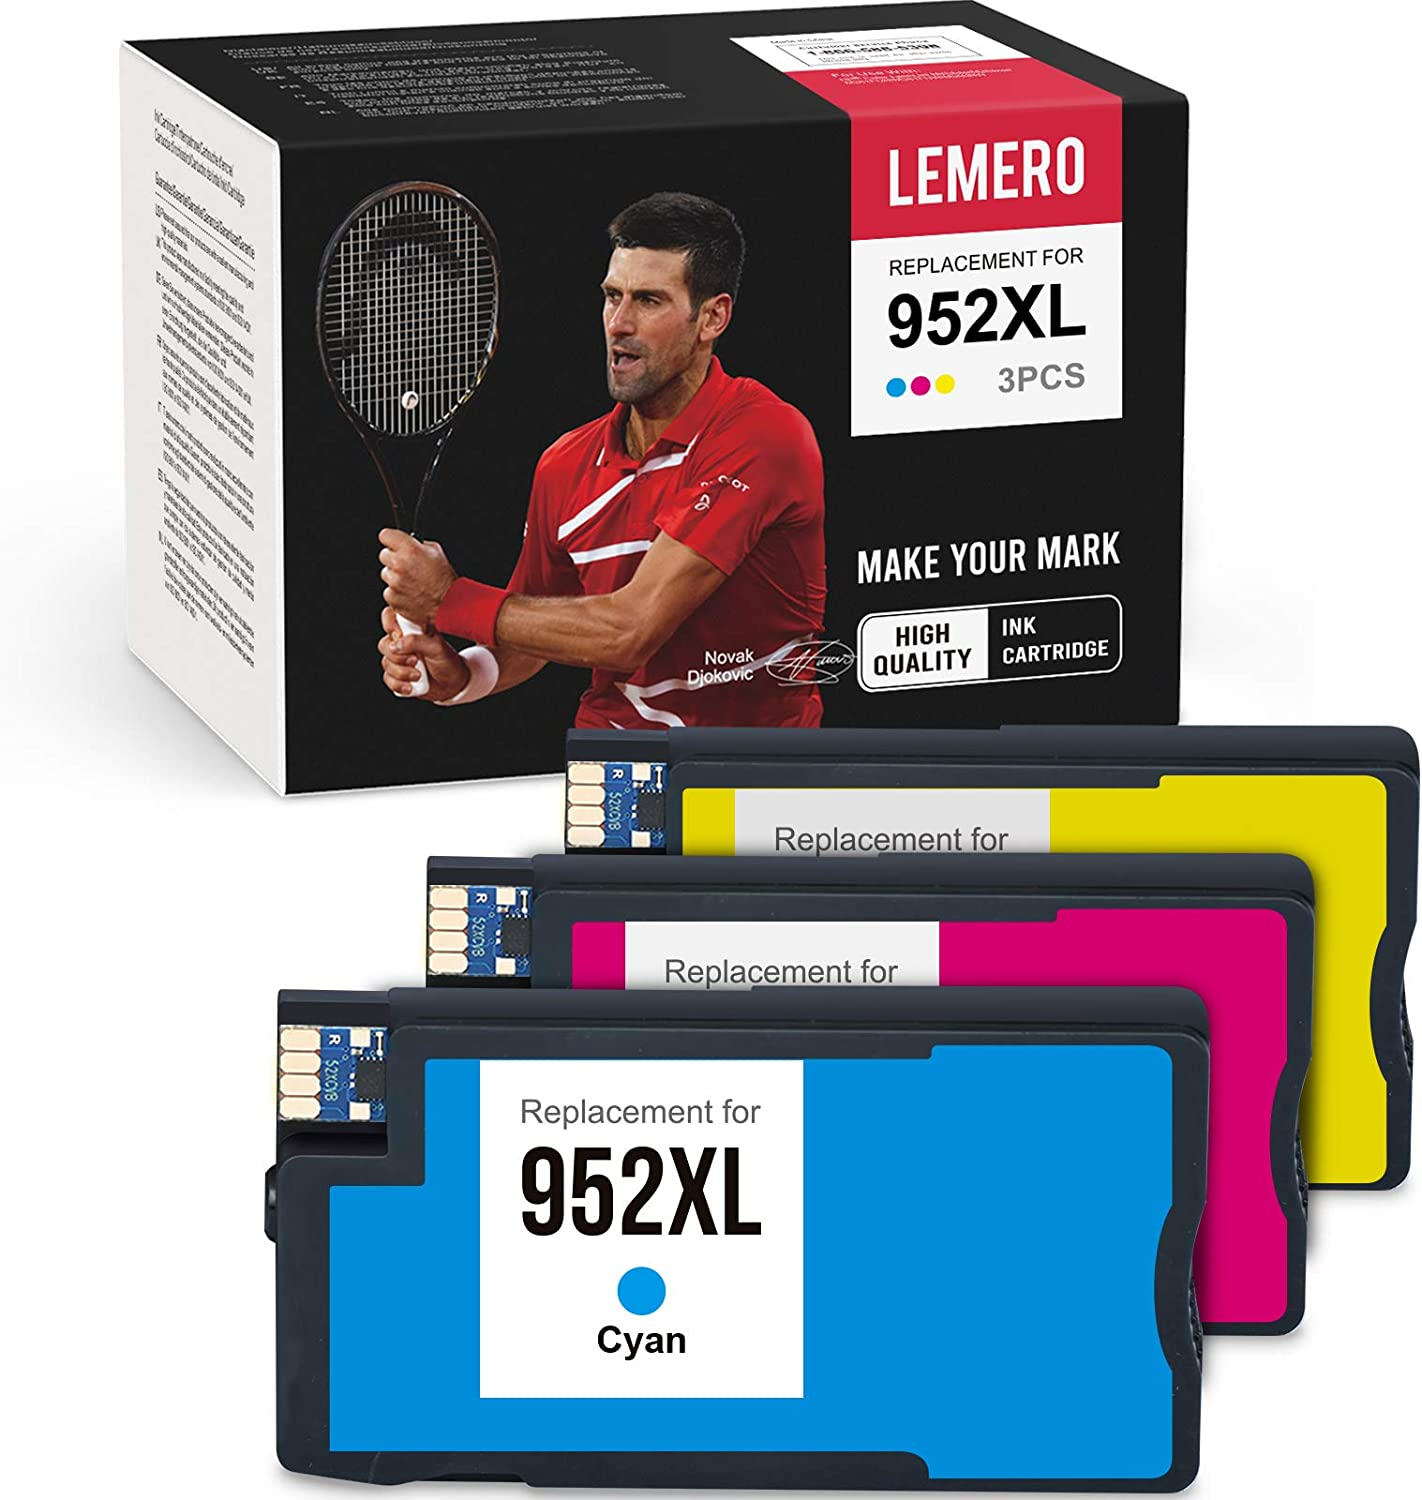 LEMERO Remanufactured Ink Cartridge Replacement for HP 952 952XL Work with OfficeJet Pro 8720 8710 7740 7720 8702 8210 8200 8715 (1 Cyan 1 Magenta 1 Yellow)